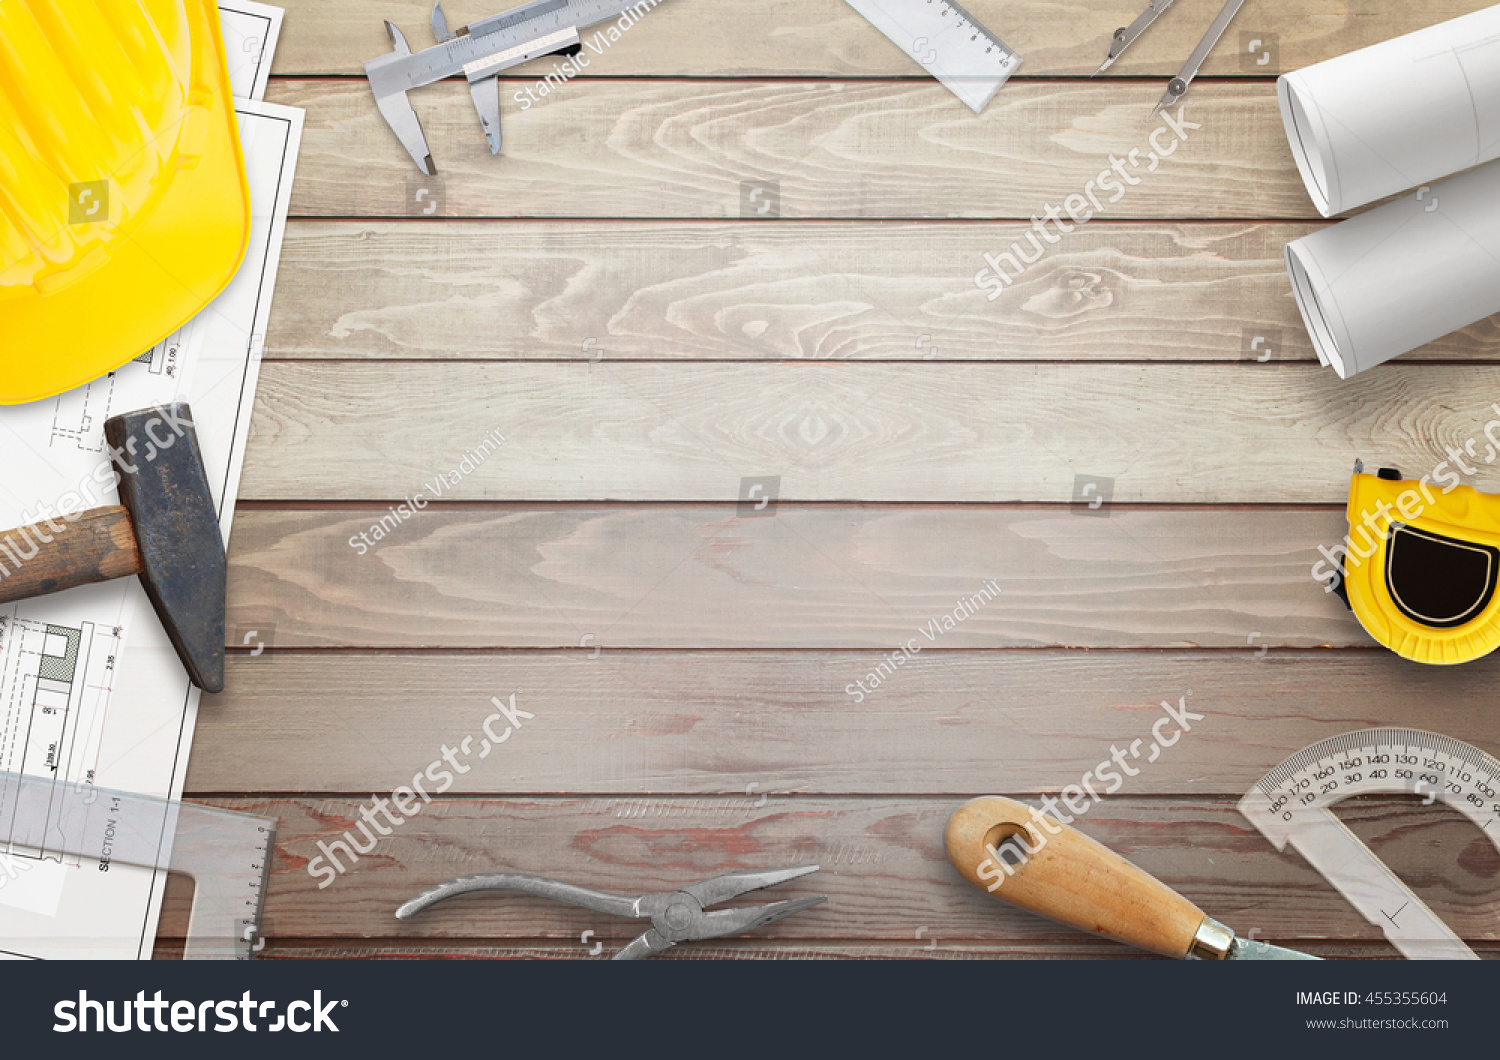 royalty free construction tools on worker desk free u2026 455355604